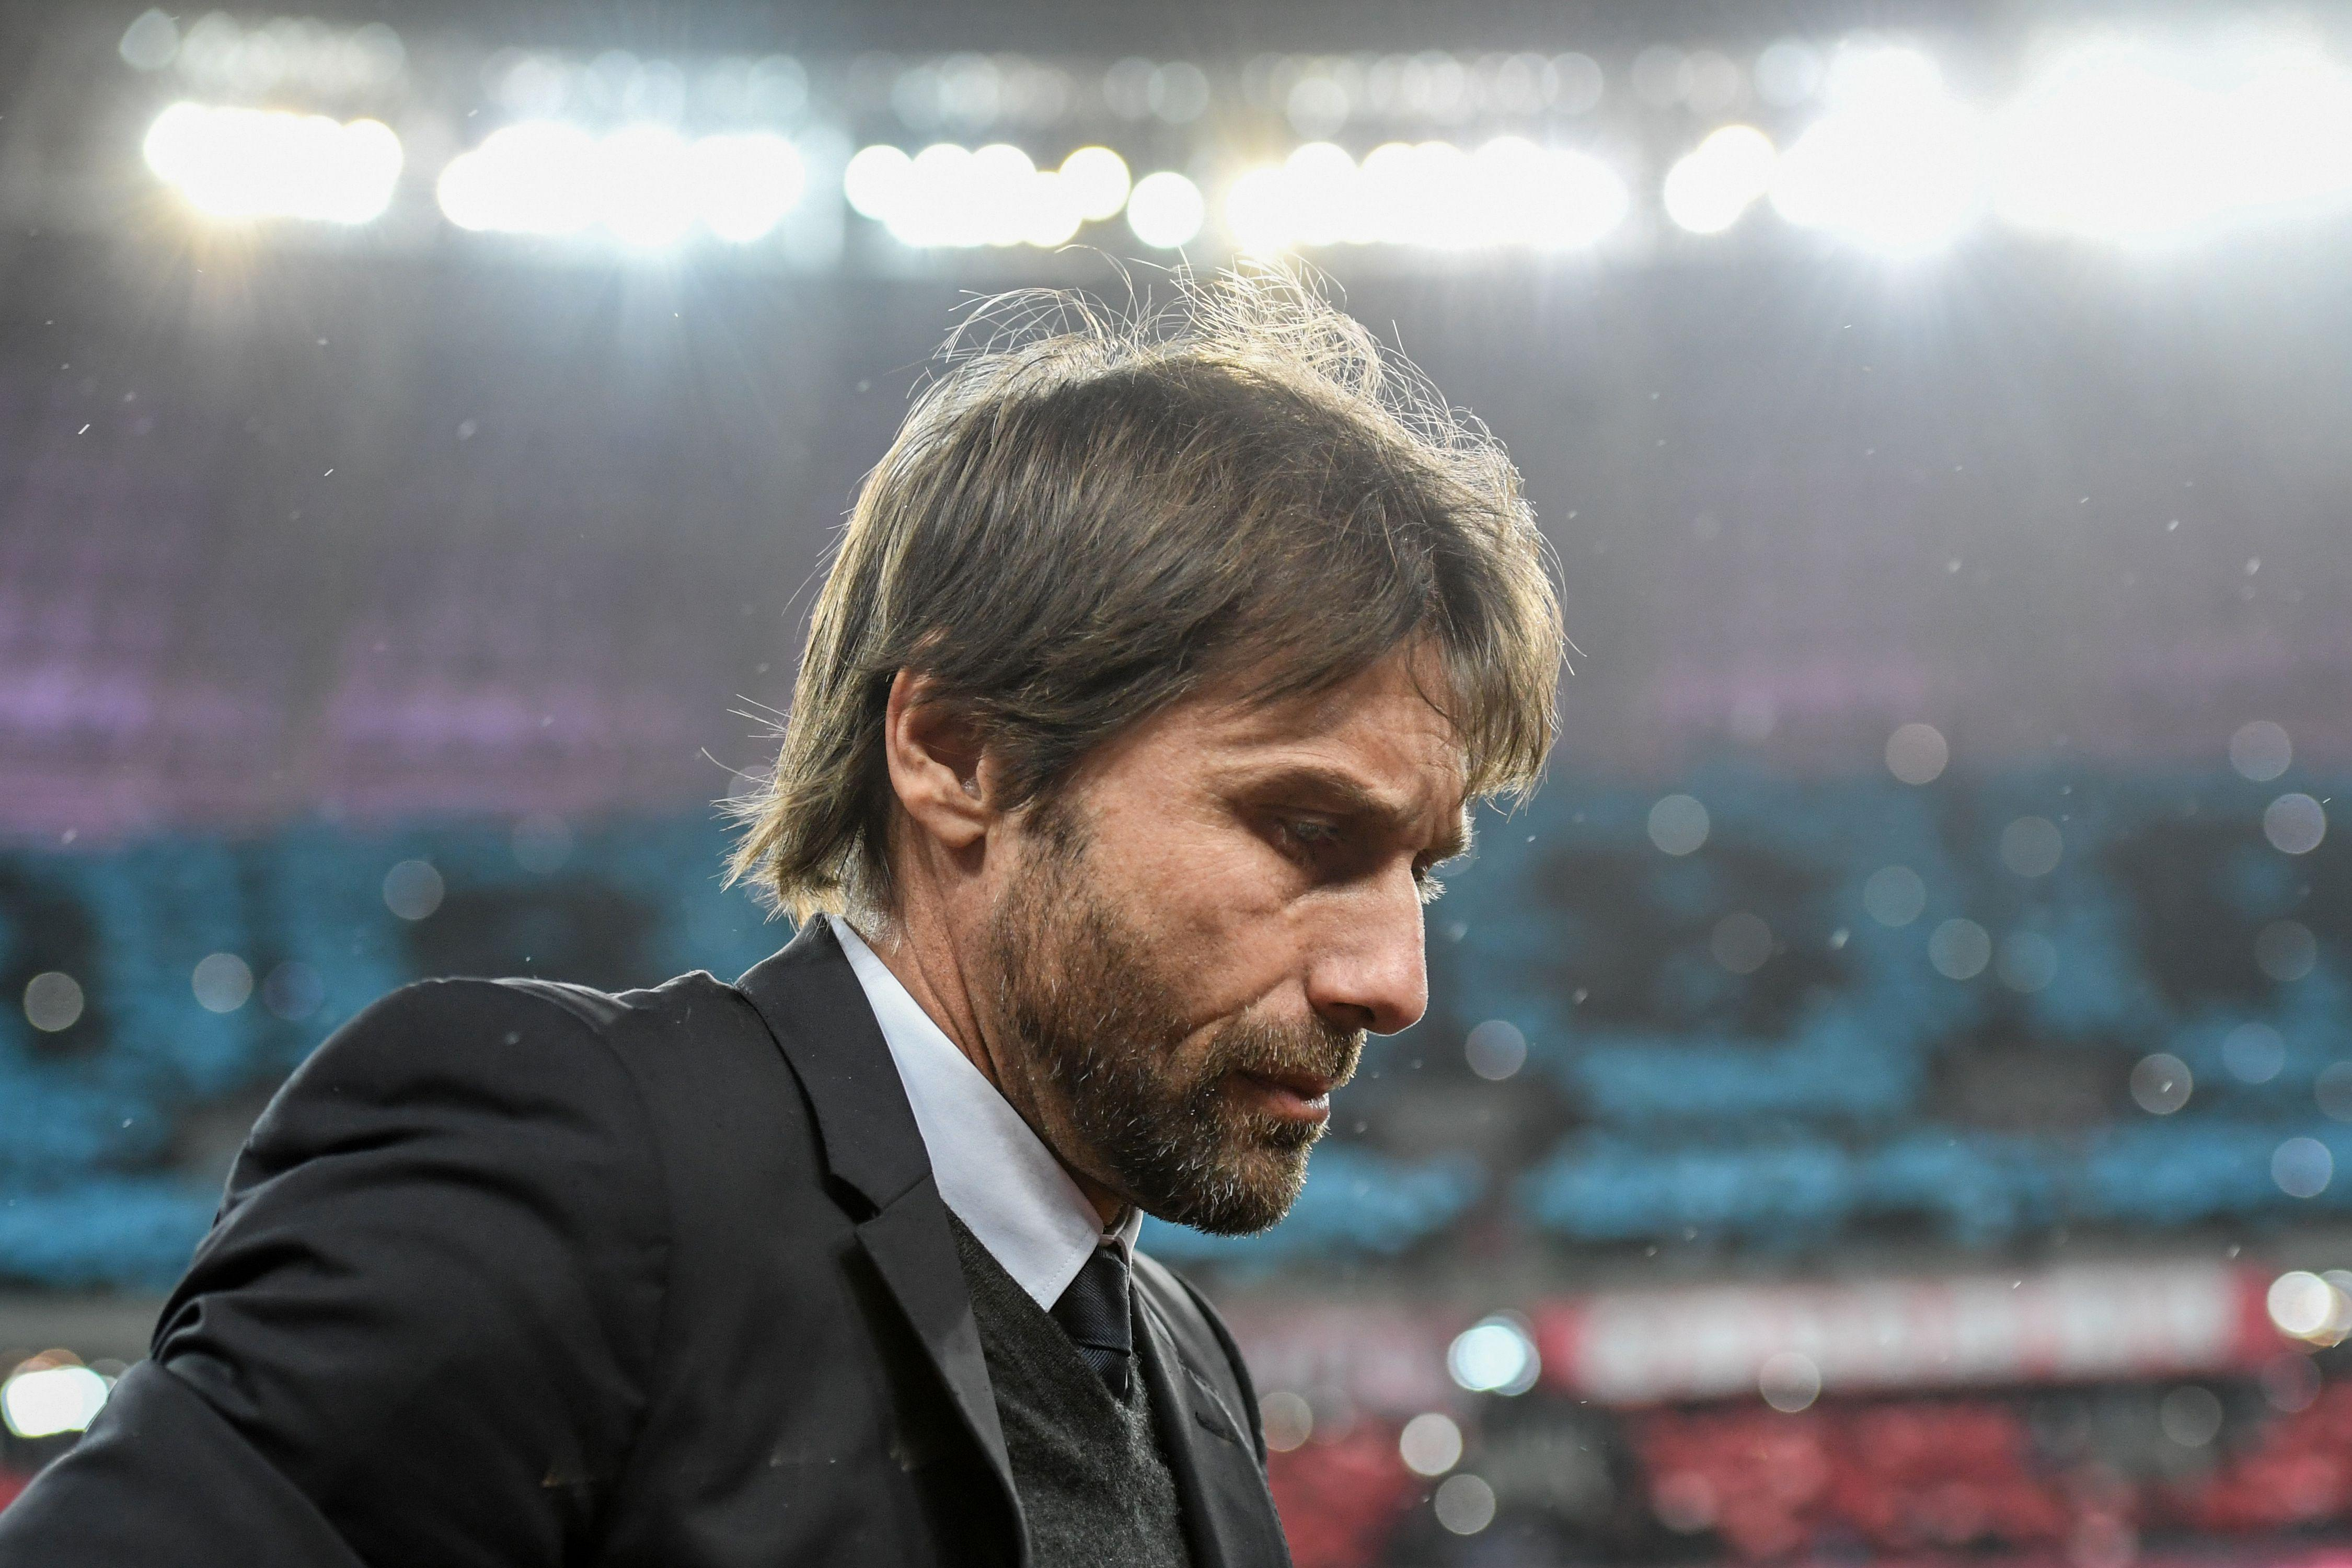 The life of a touring rockstar, featuring Antonio Conte